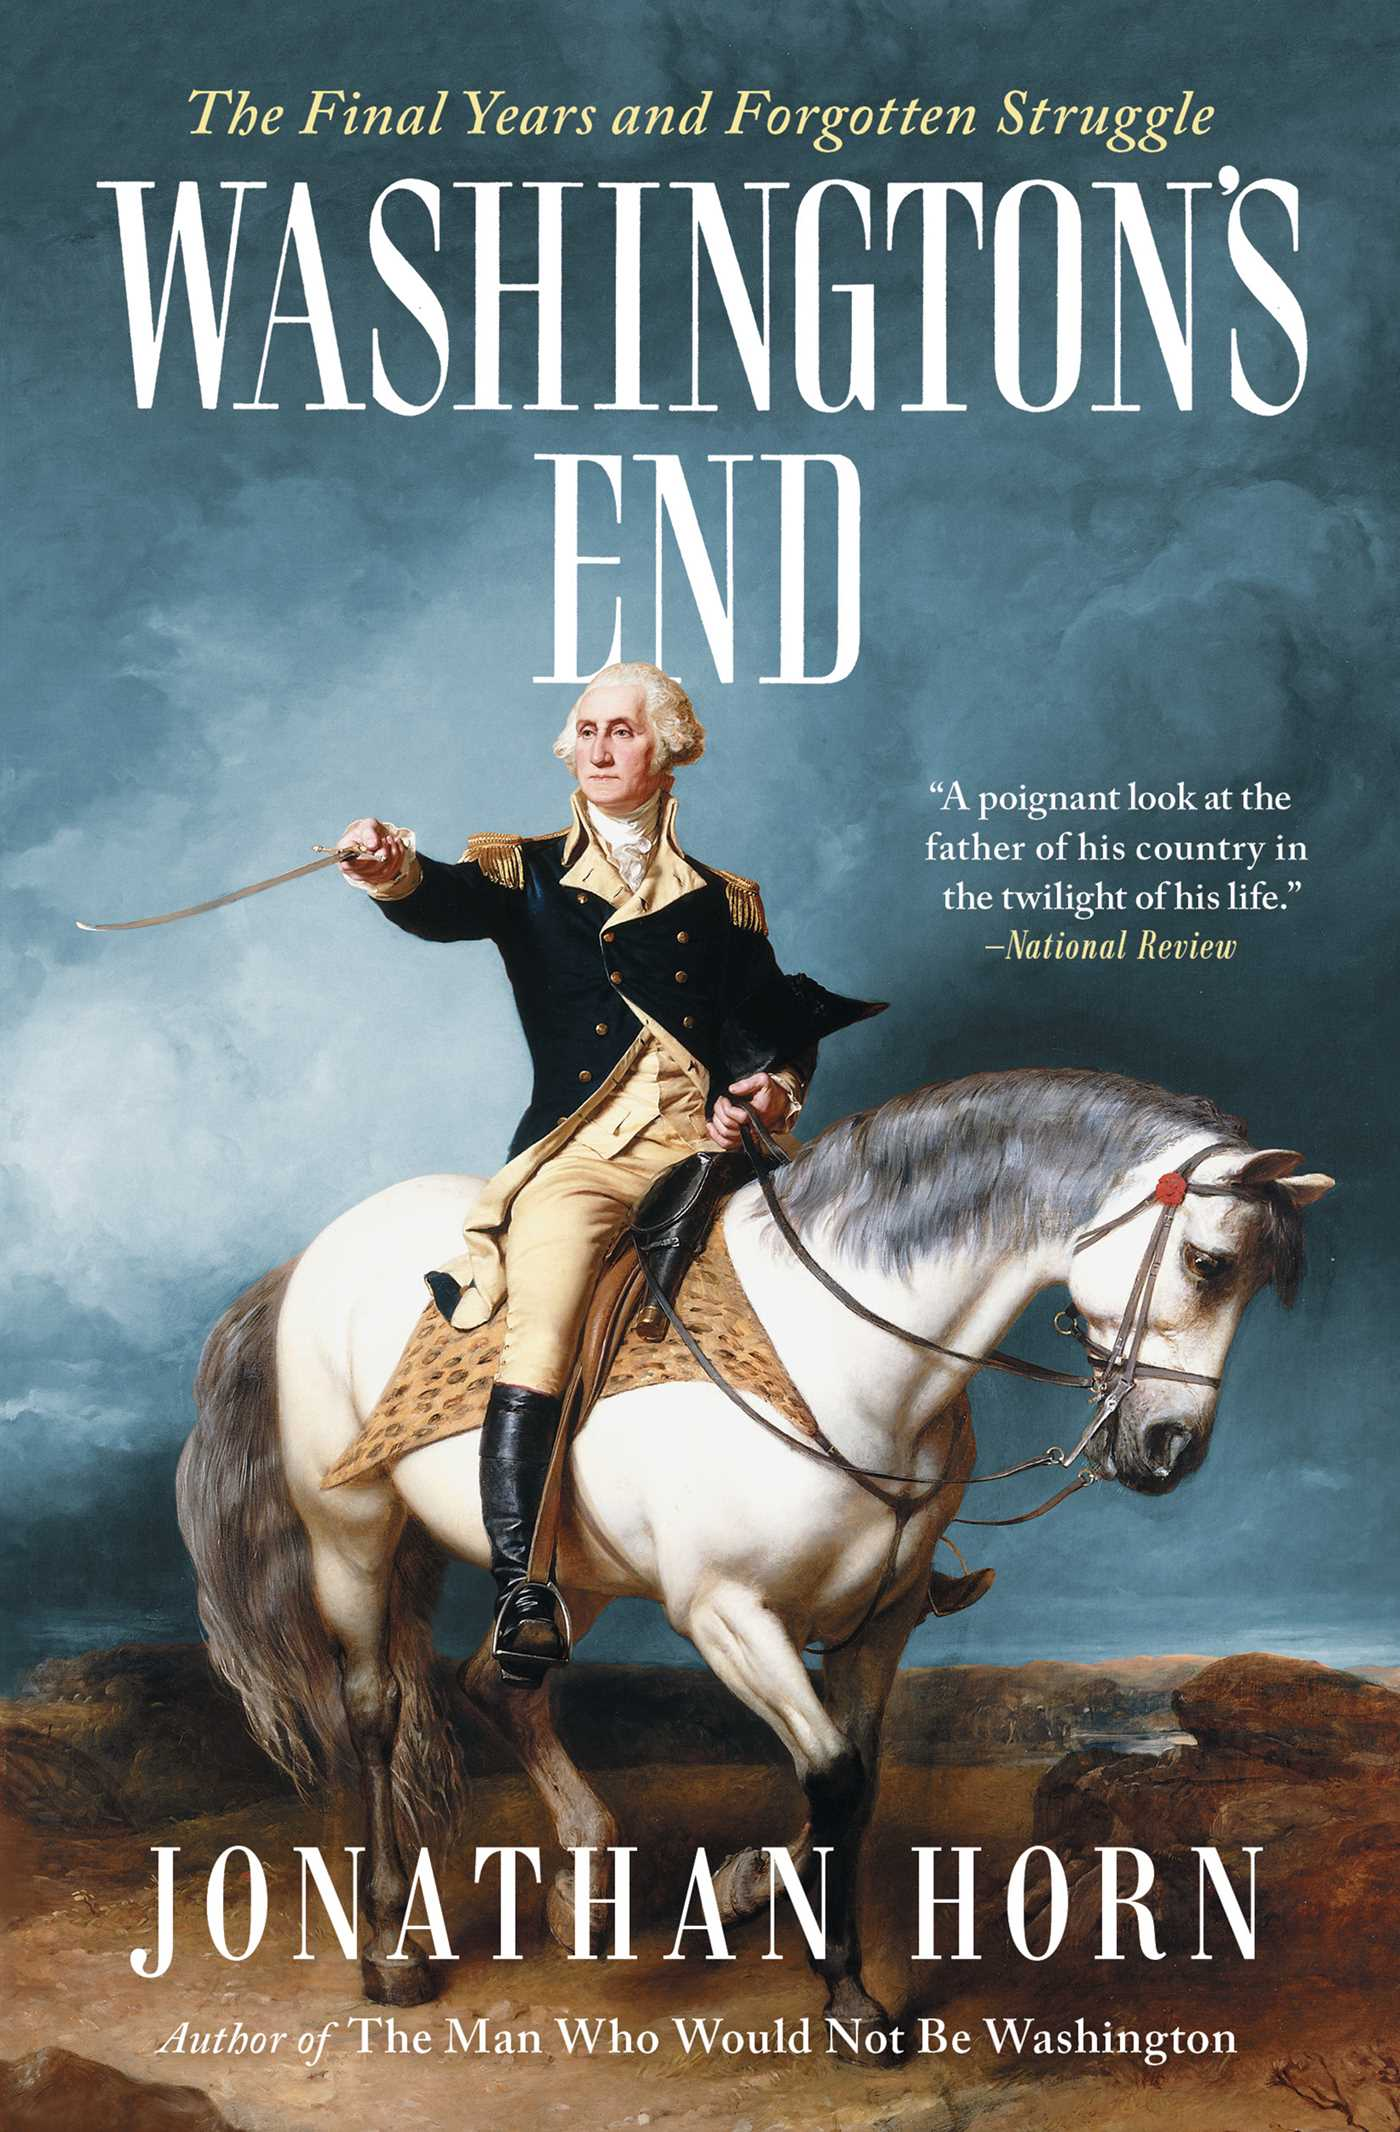 Washington's end the final years and forgotten struggle cover image